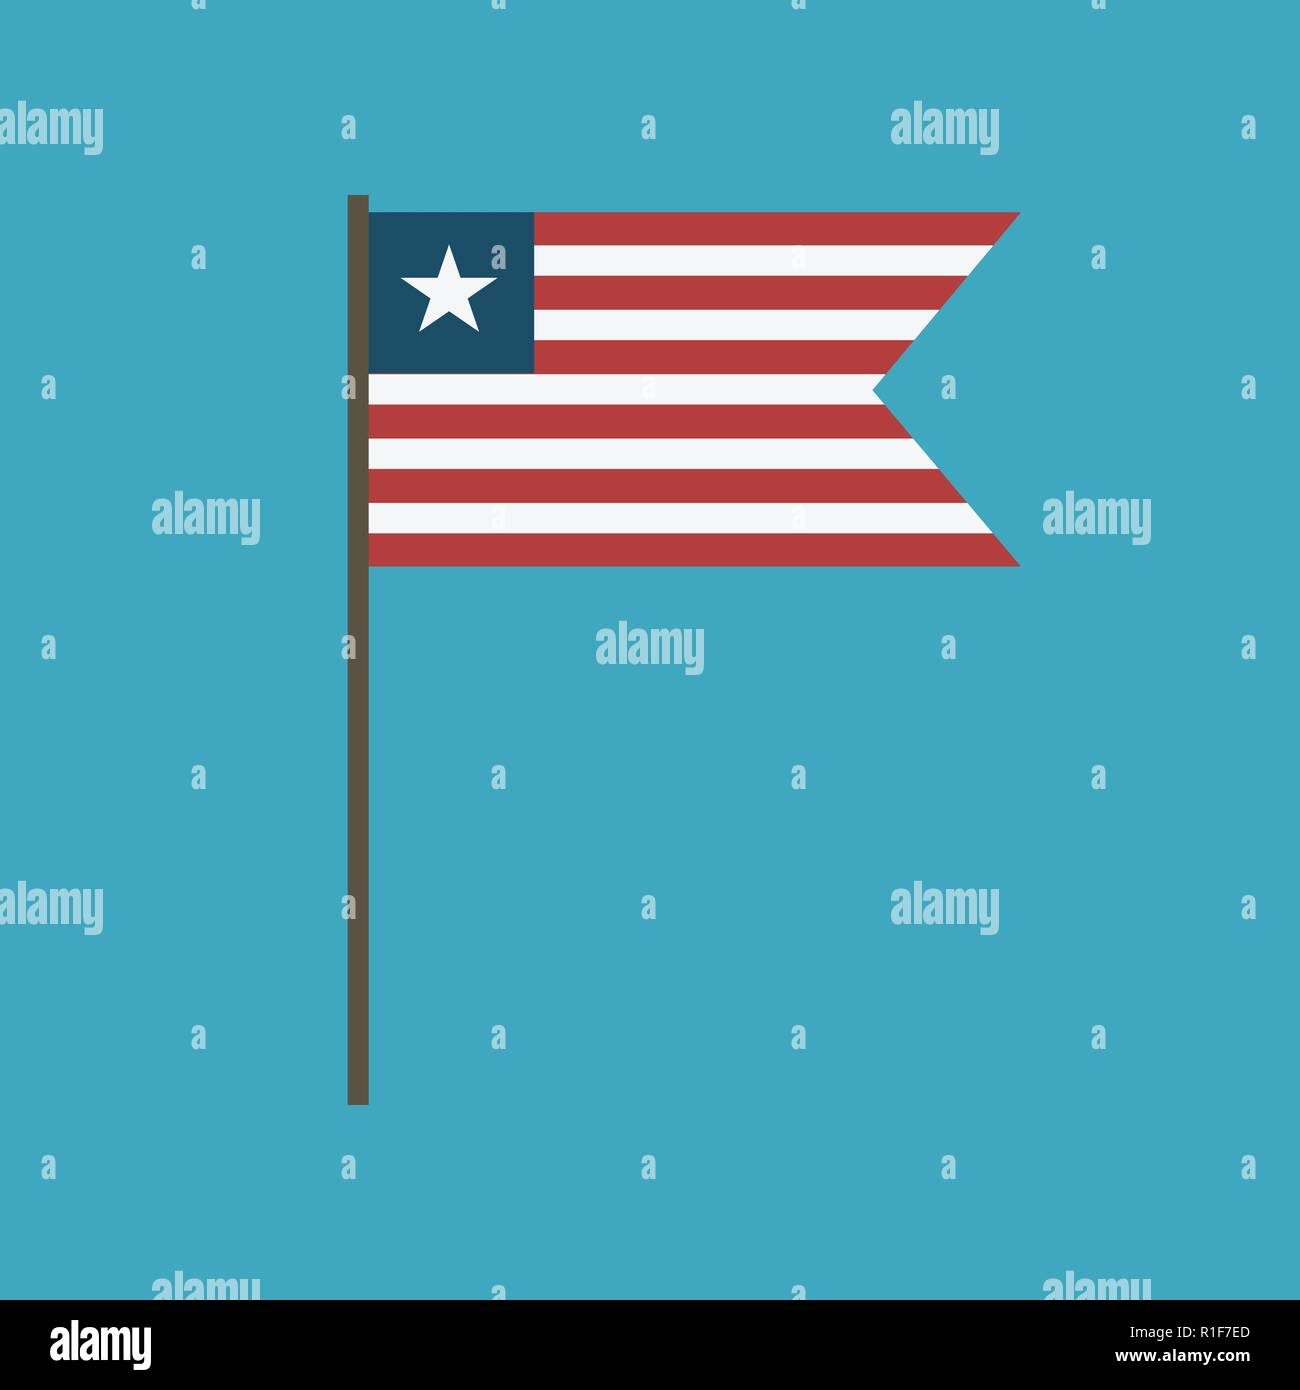 Liberia flag icon in flat design. Independence day or National day holiday concept. - Stock Image